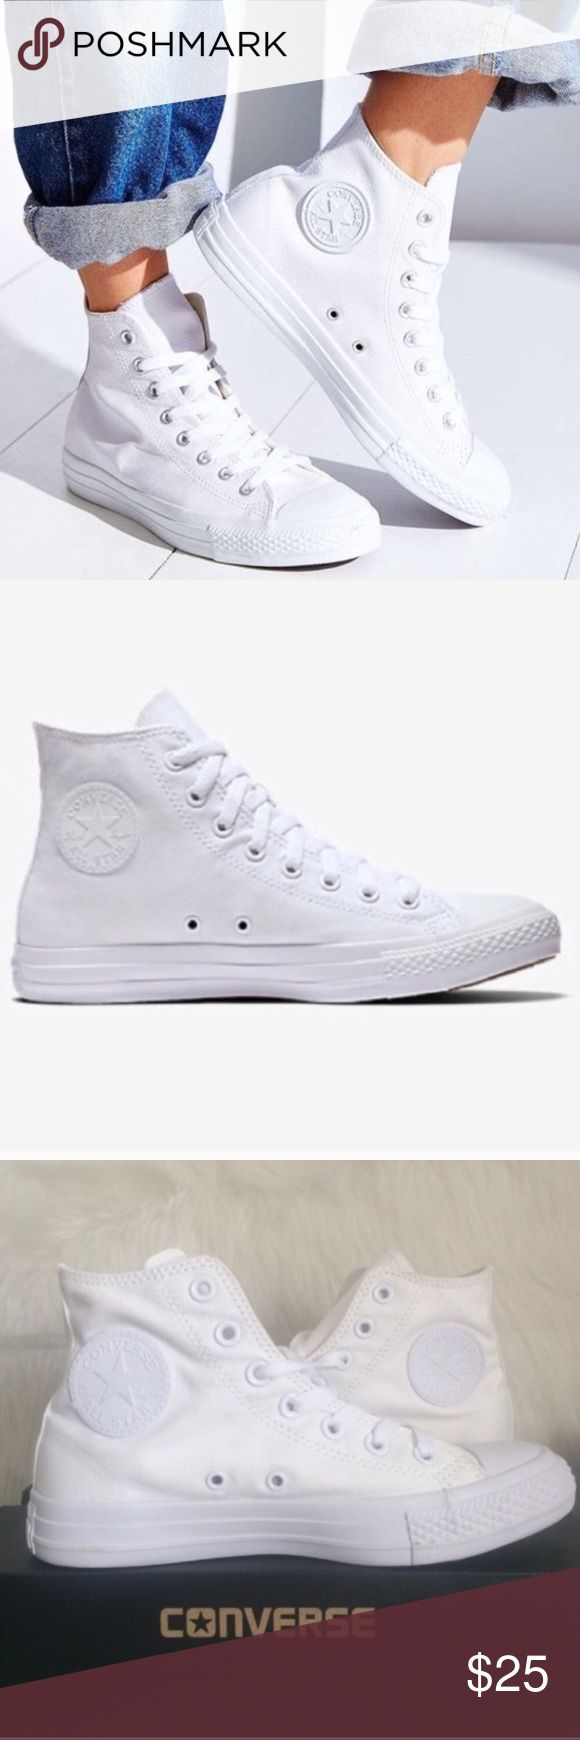 CONVERSE ALL WHITE CHUCK TAYLORS WOMENS SIZE 5 In like new condition. No box Converse Shoes Sneakers